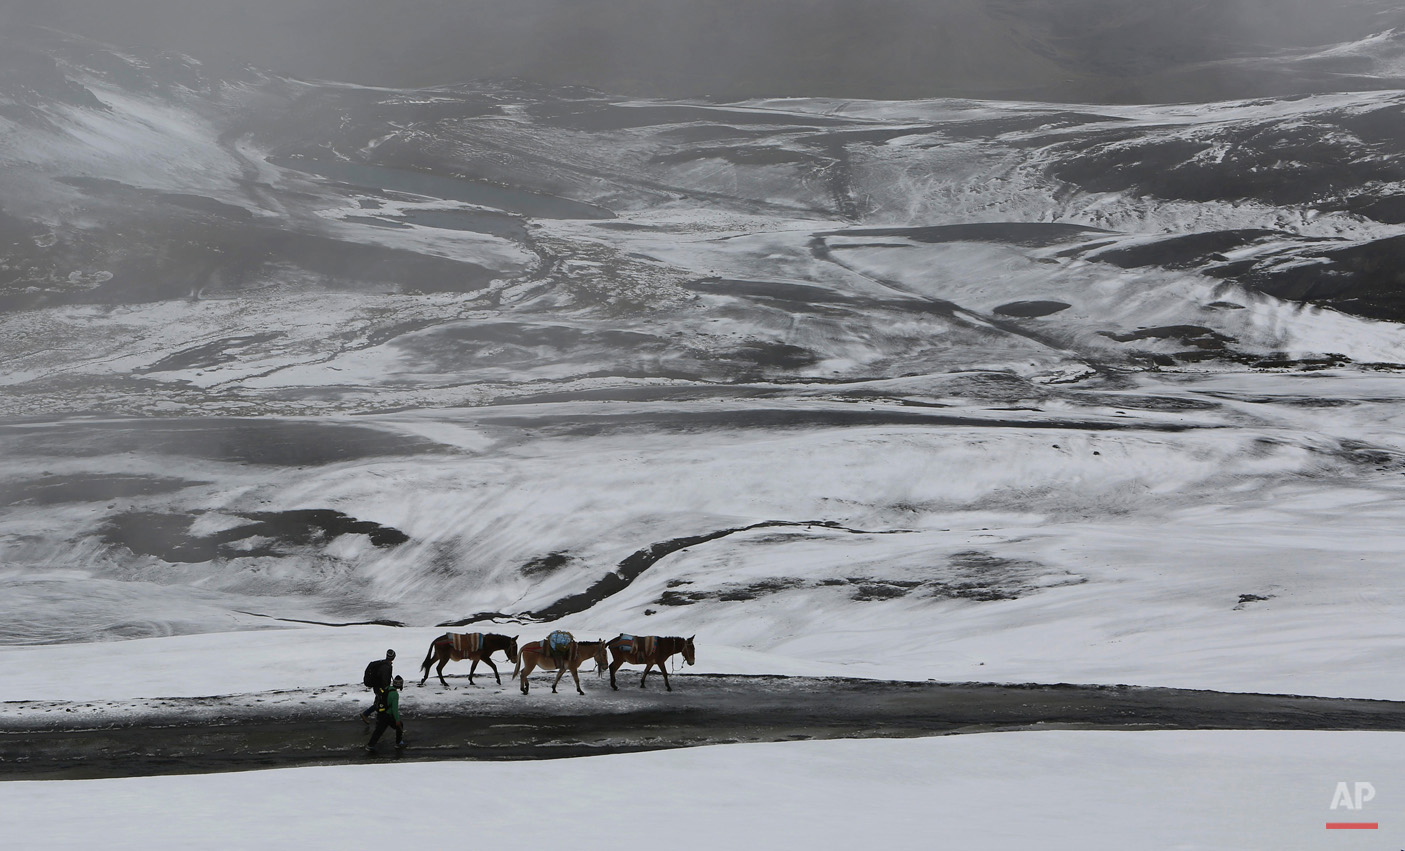 In this March 14, 2015, photo, farmers walk with their donkeys on a snow covered road in La Cumbre mountain on the outskirts of La Paz, Bolivia. (AP Photo/Juan Karita)